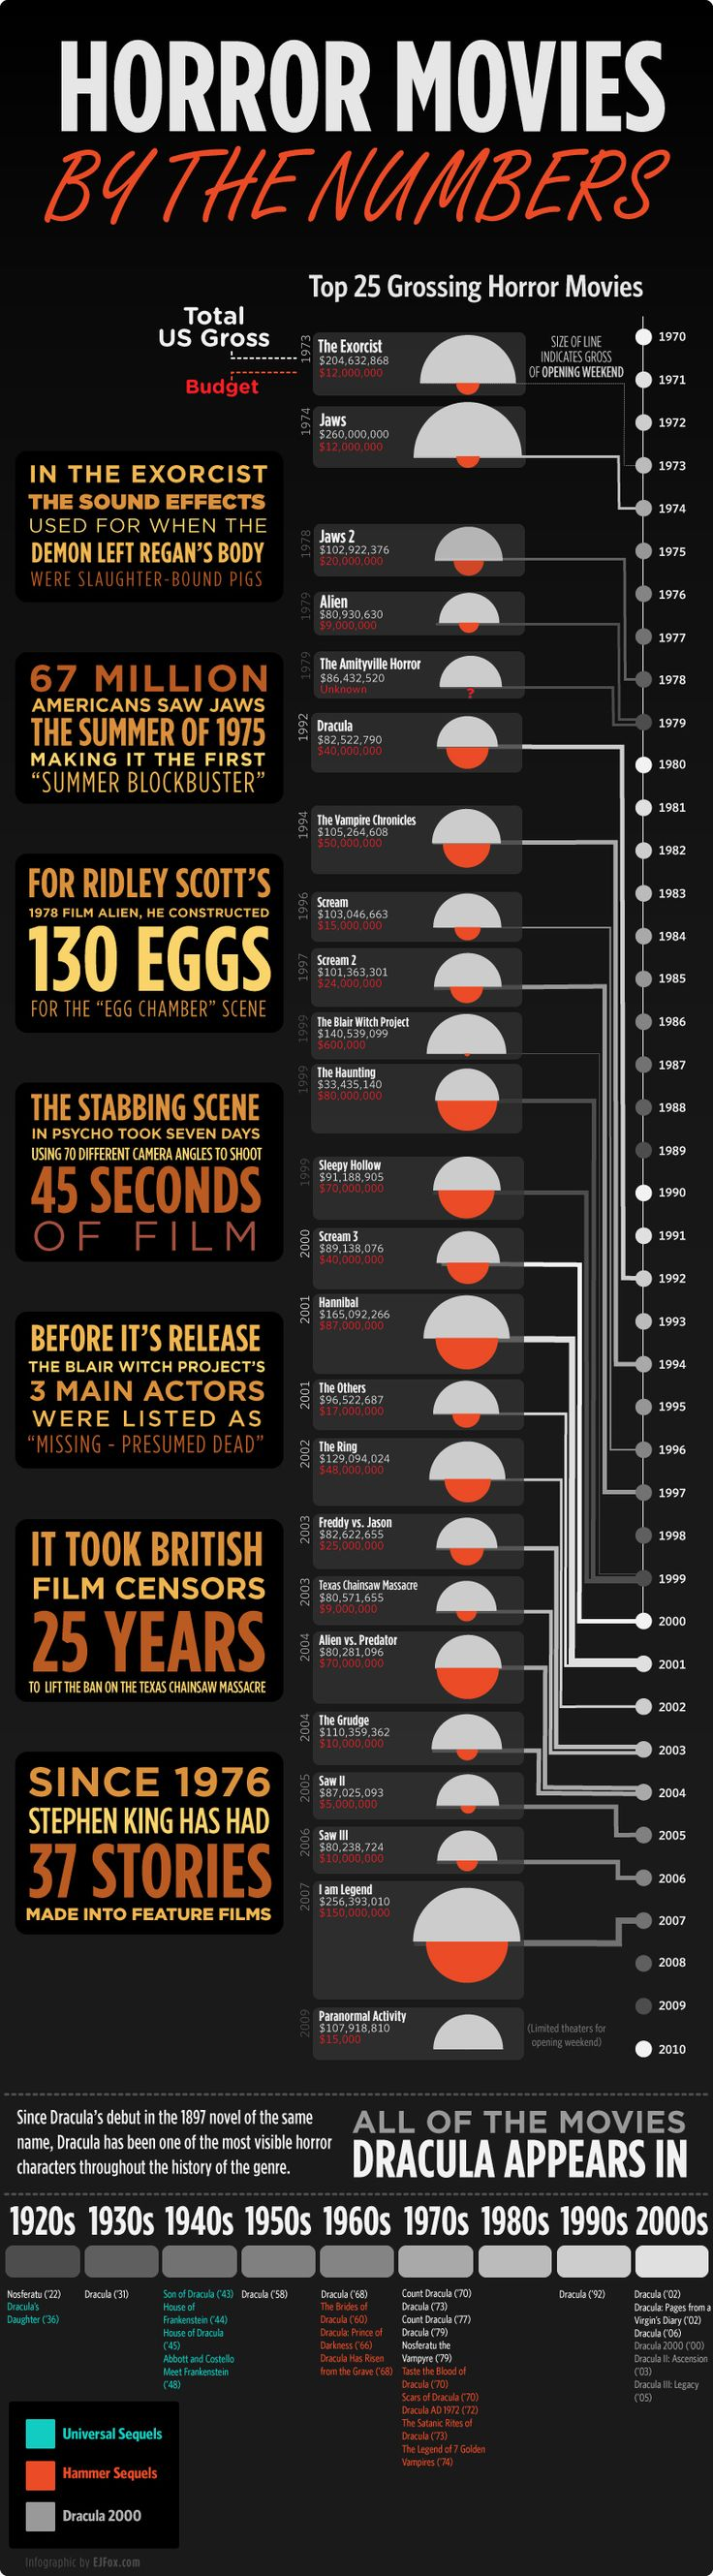 A nice way to organize very numerical data in a visually pleasing way. And I love horror movies. A lot